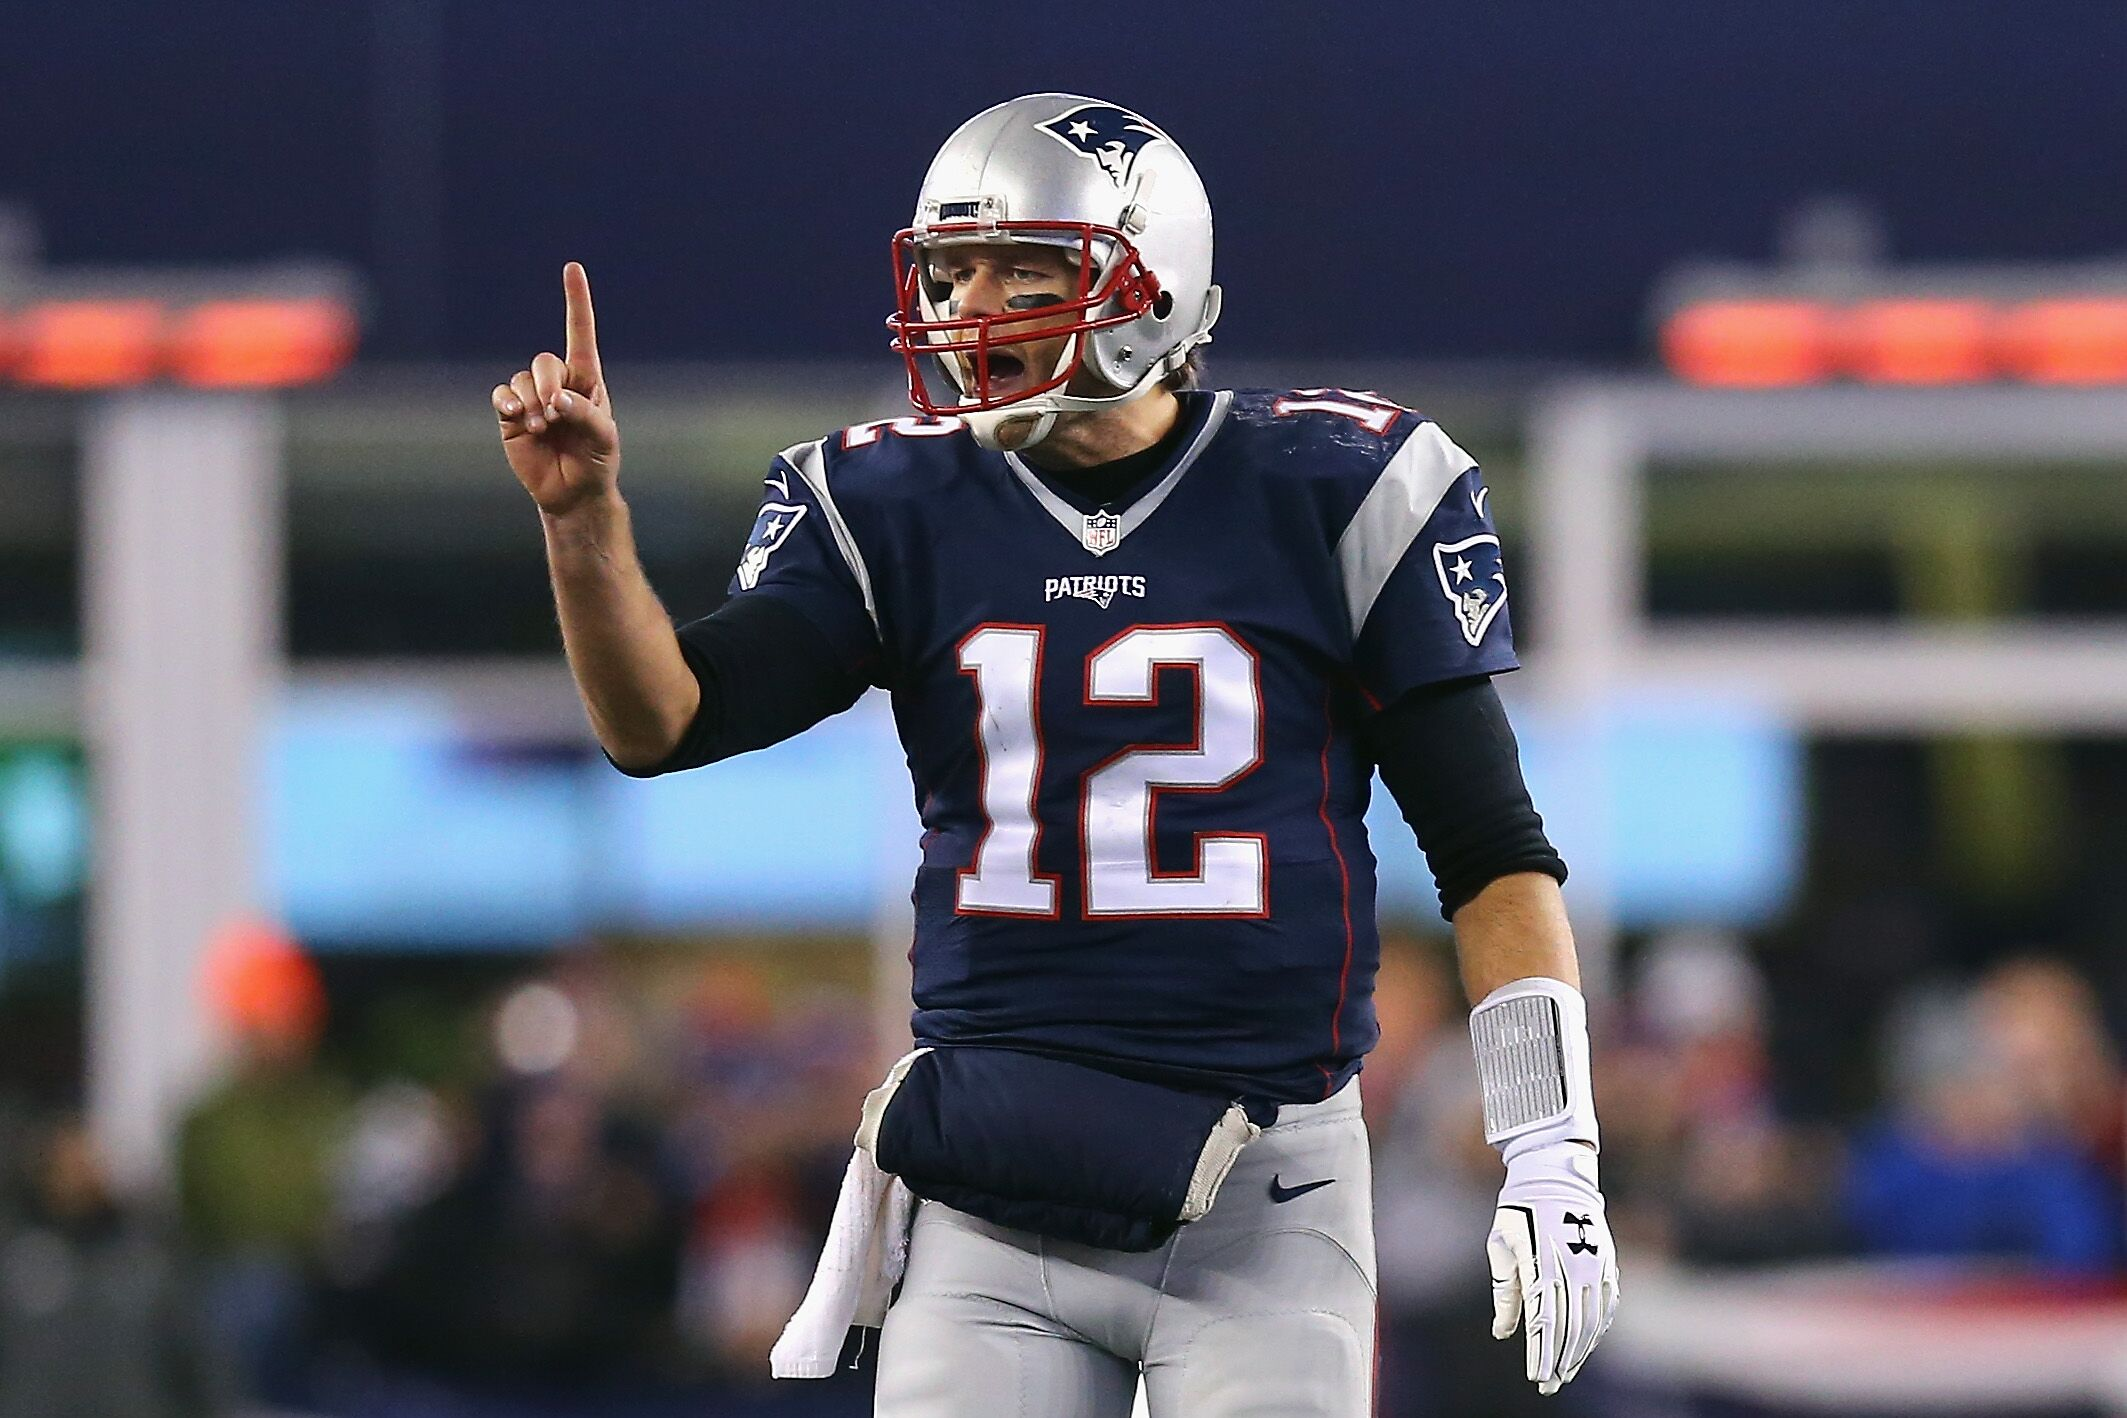 tom brady spends time with throwing coach during playoff - HD1600×900